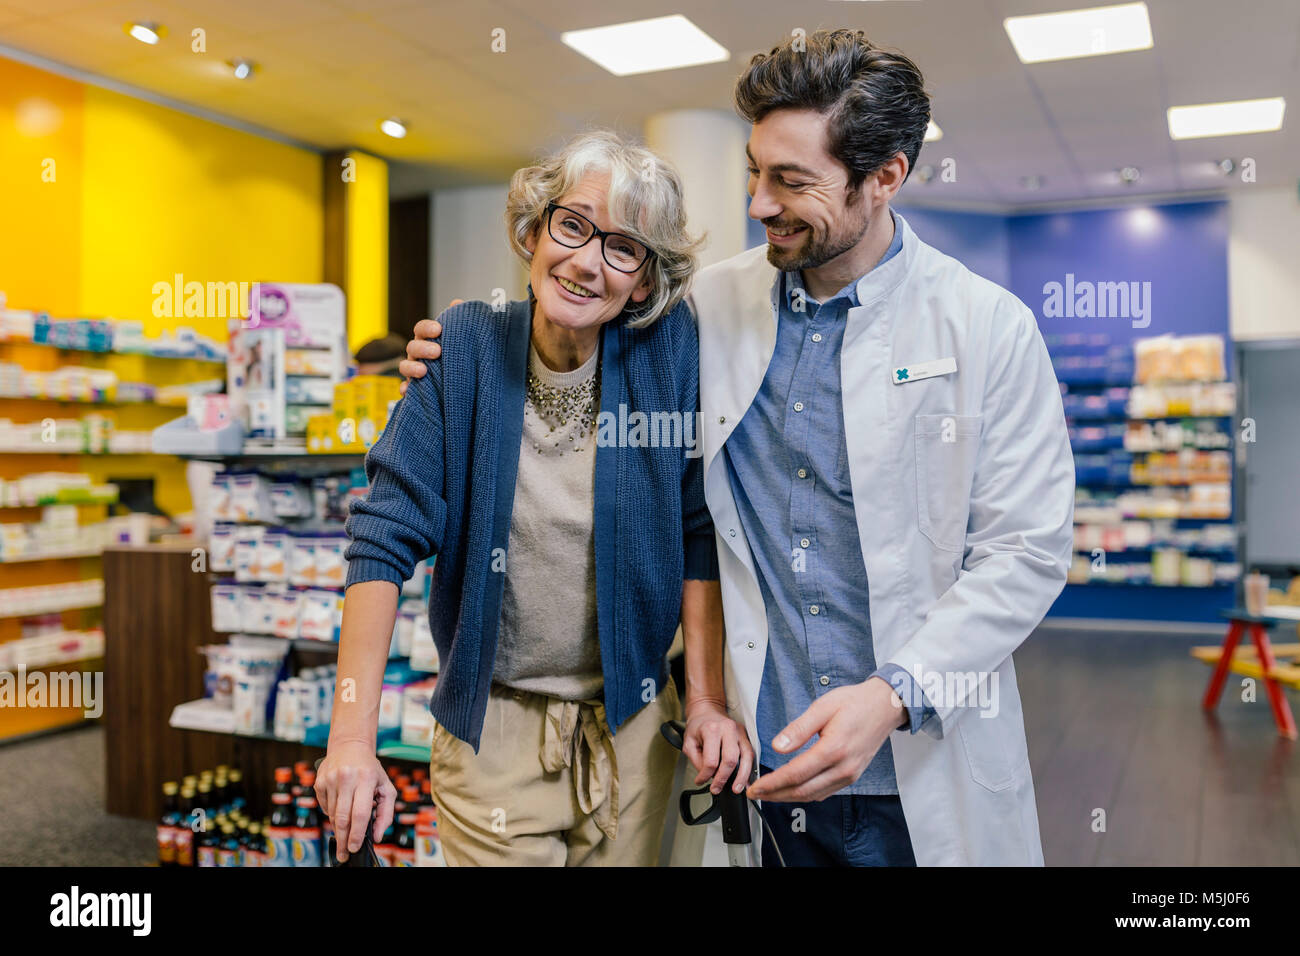 Portrait of smiling pharmacist and customer with wheeled walker in pharmacy - Stock Image